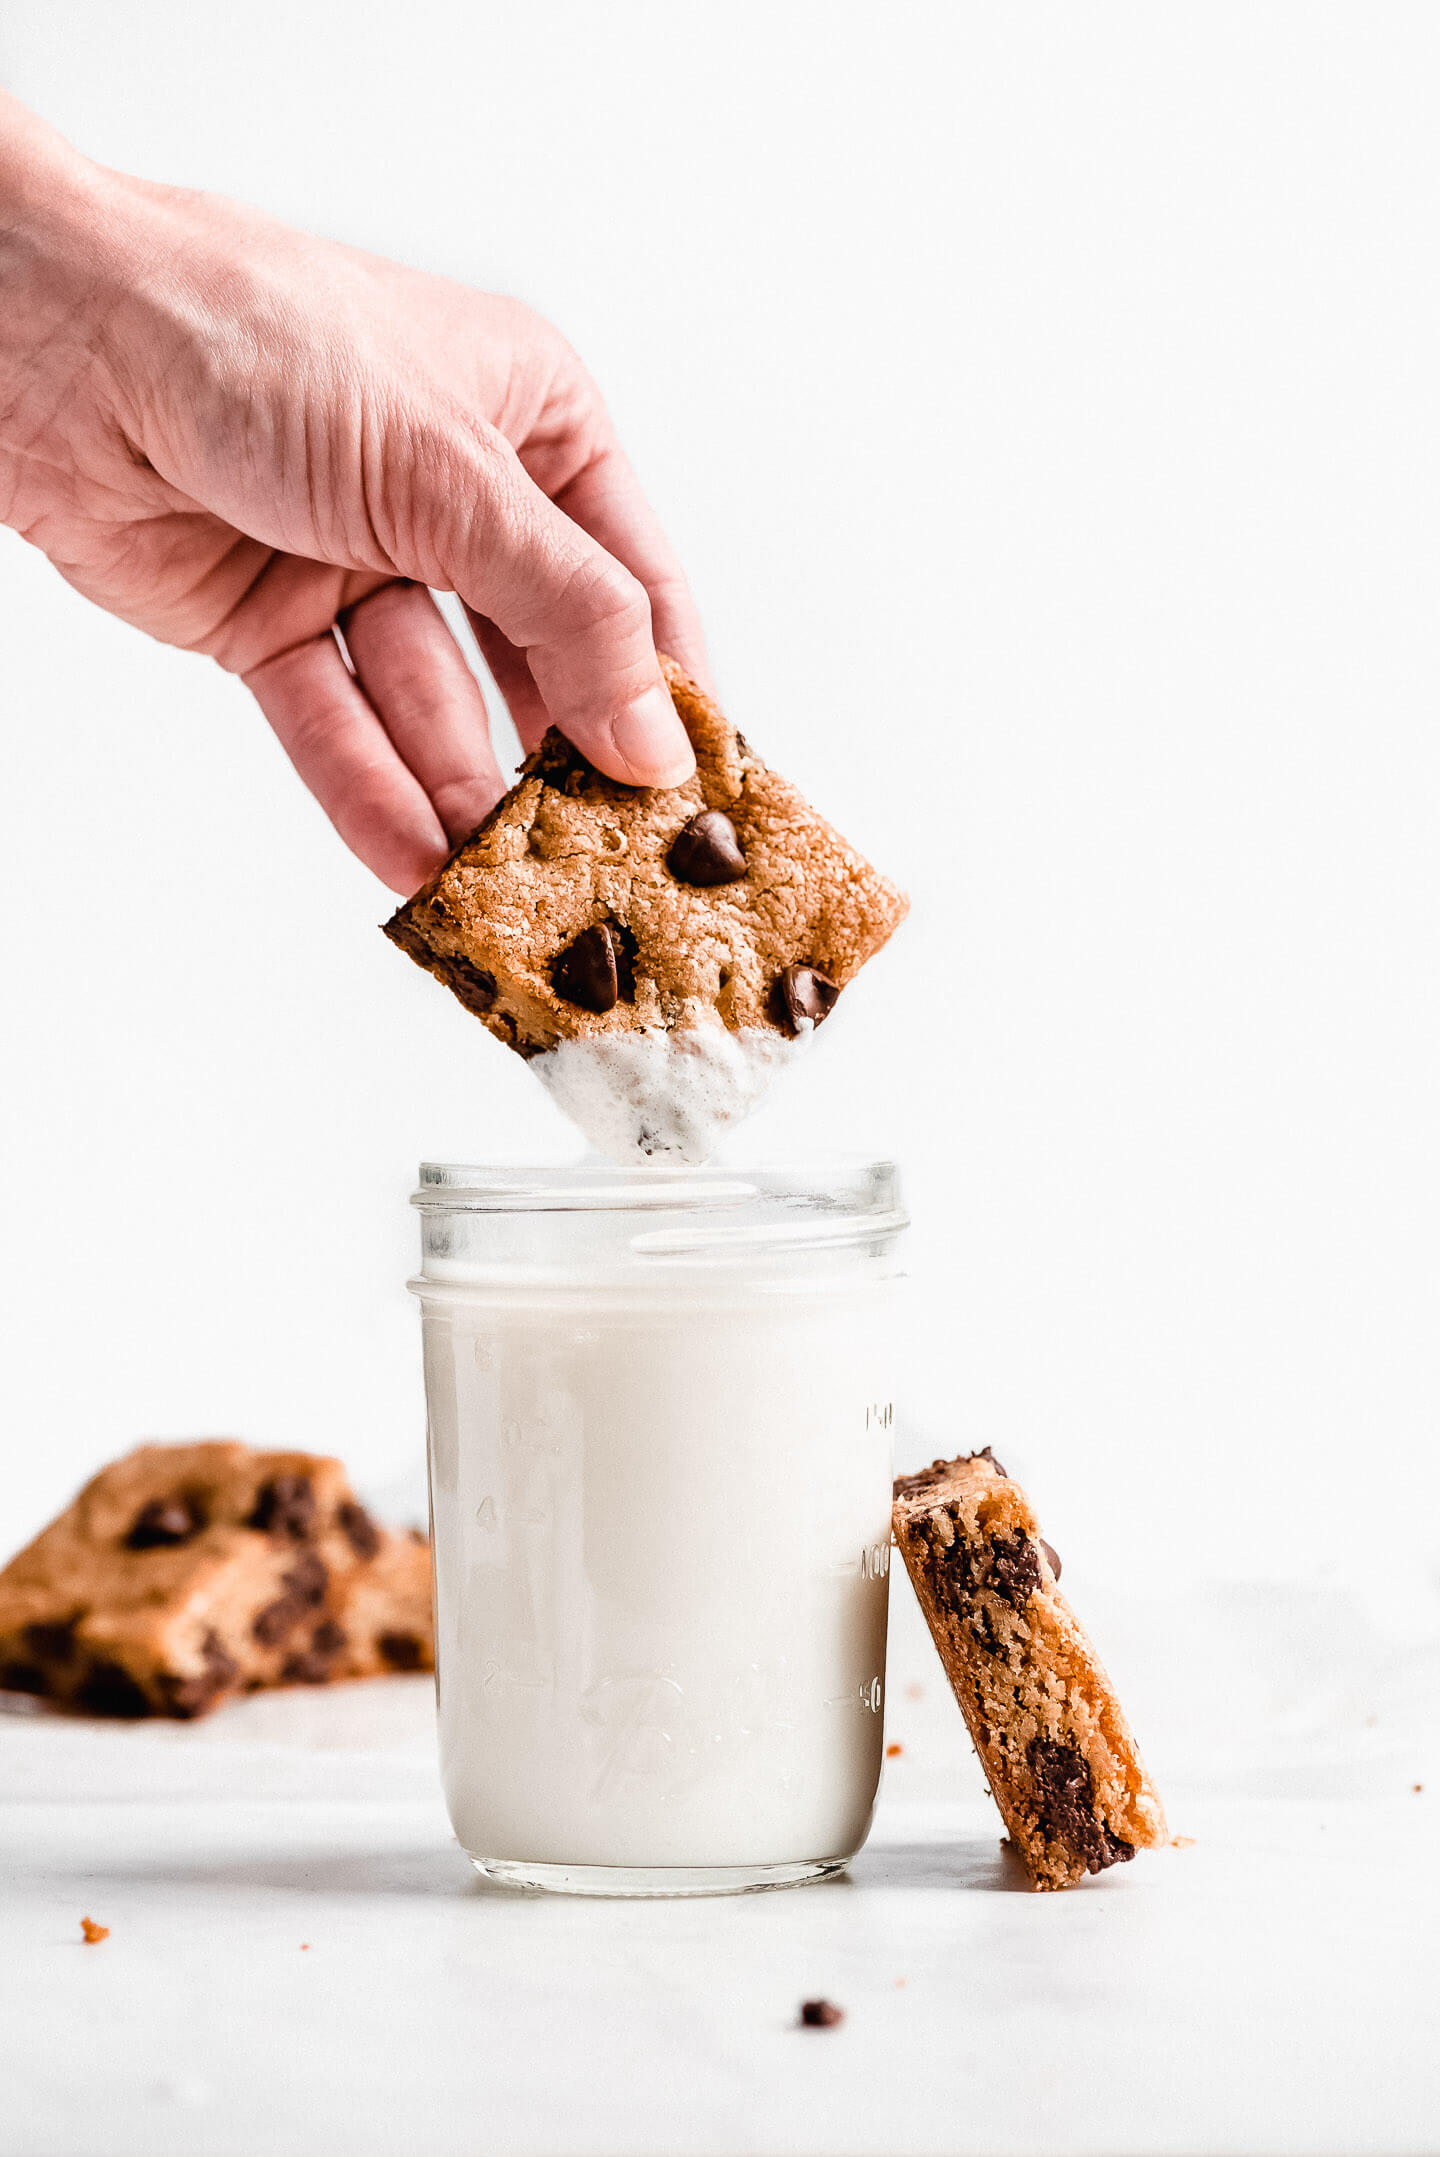 A cookie bar being lifted out of a jar of milk with milk dripping off it.